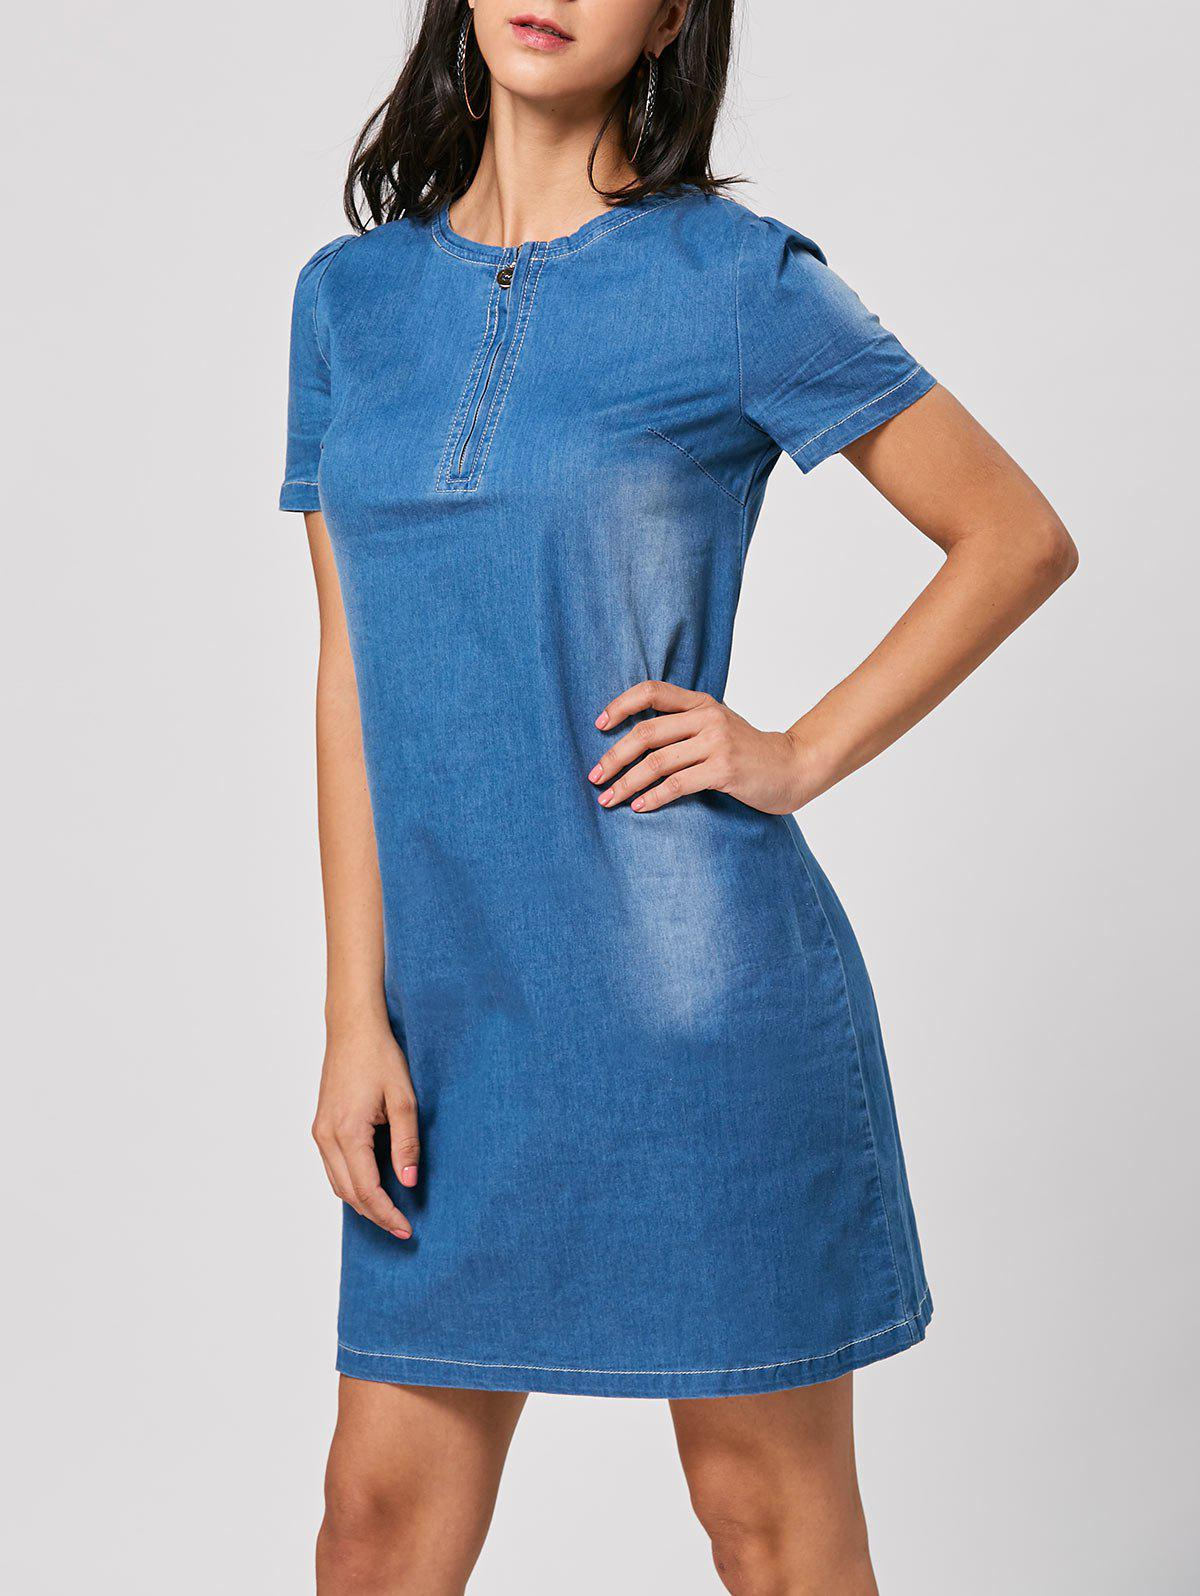 Denim Shift Dress - LIGHT BLUE S